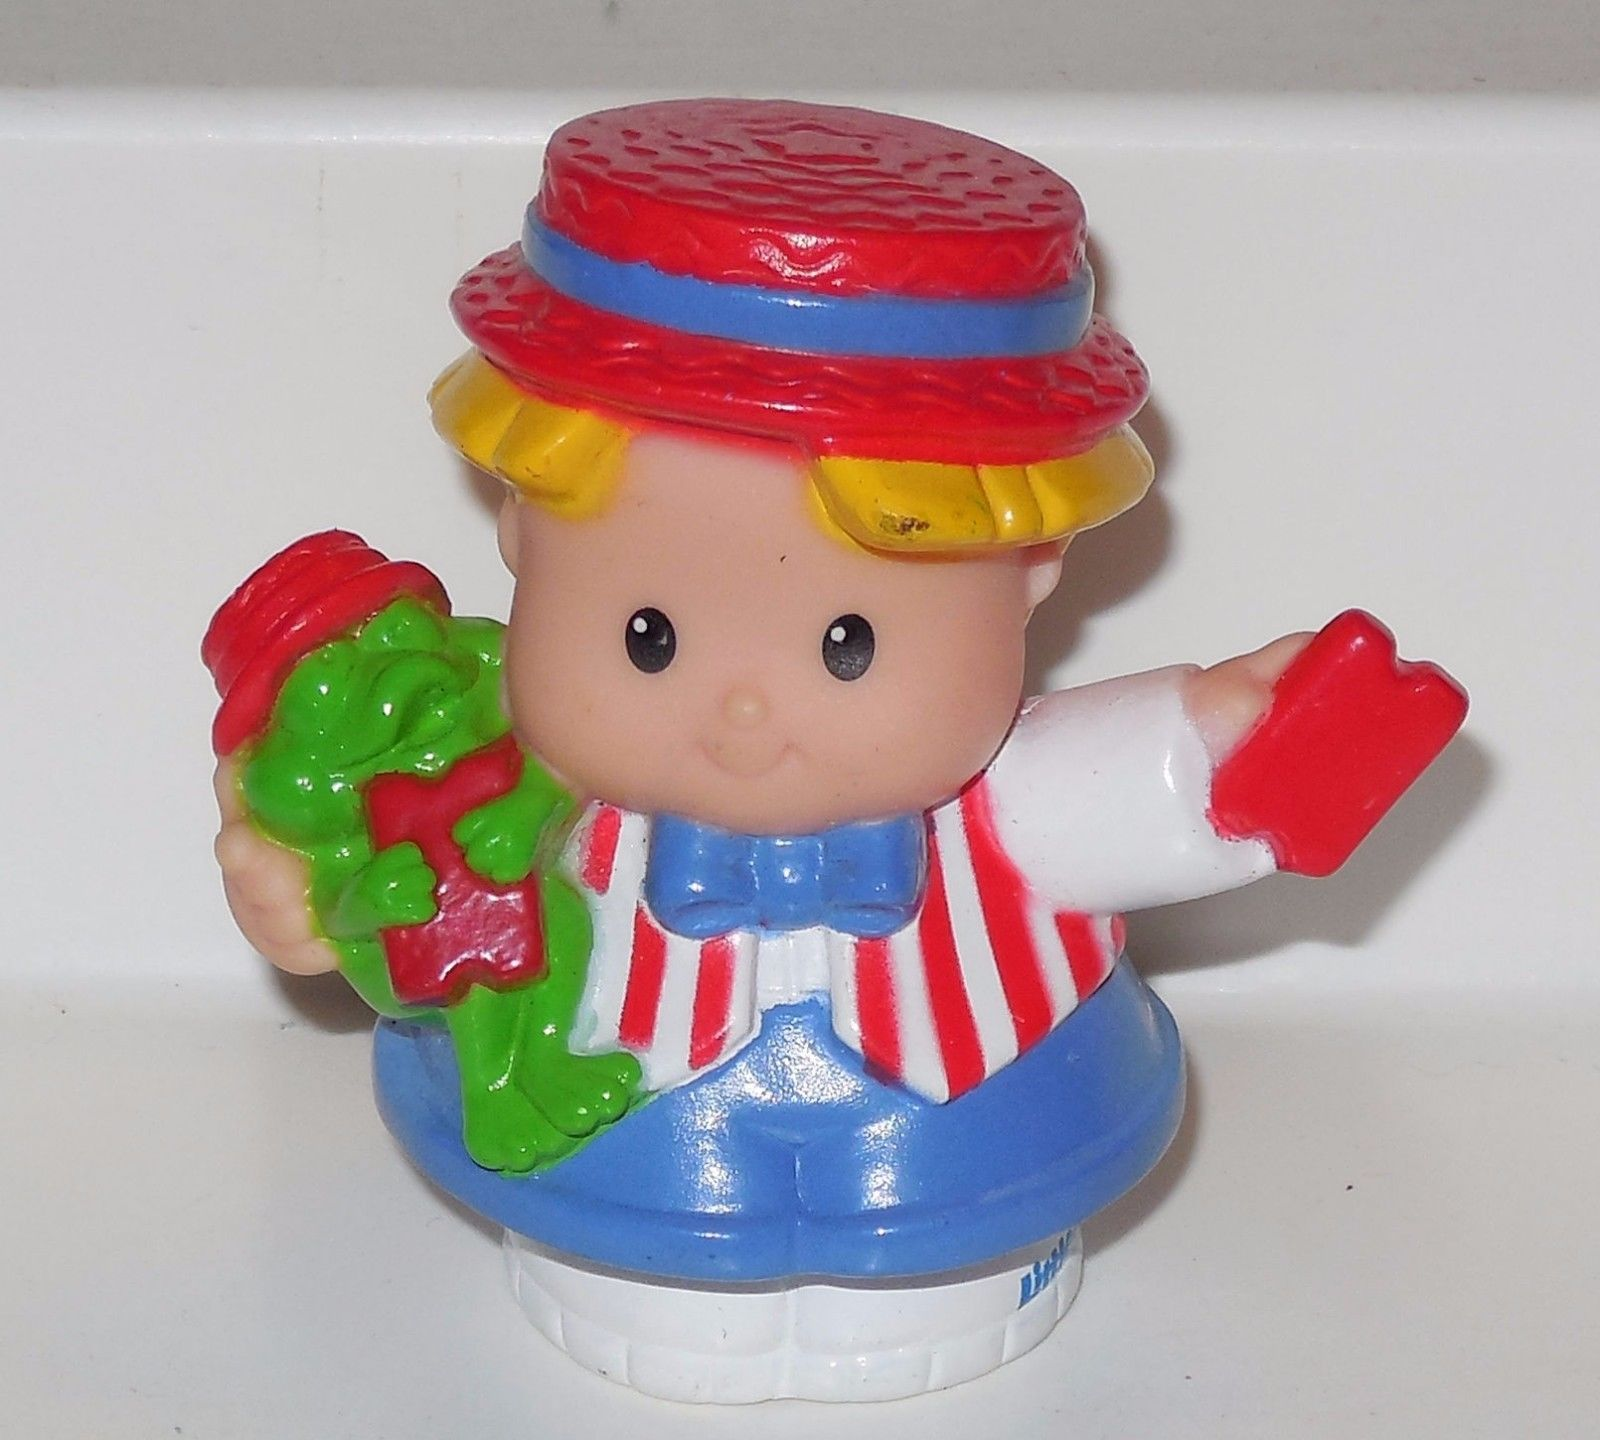 Fisher Price Current Little People Boy FPLP #2